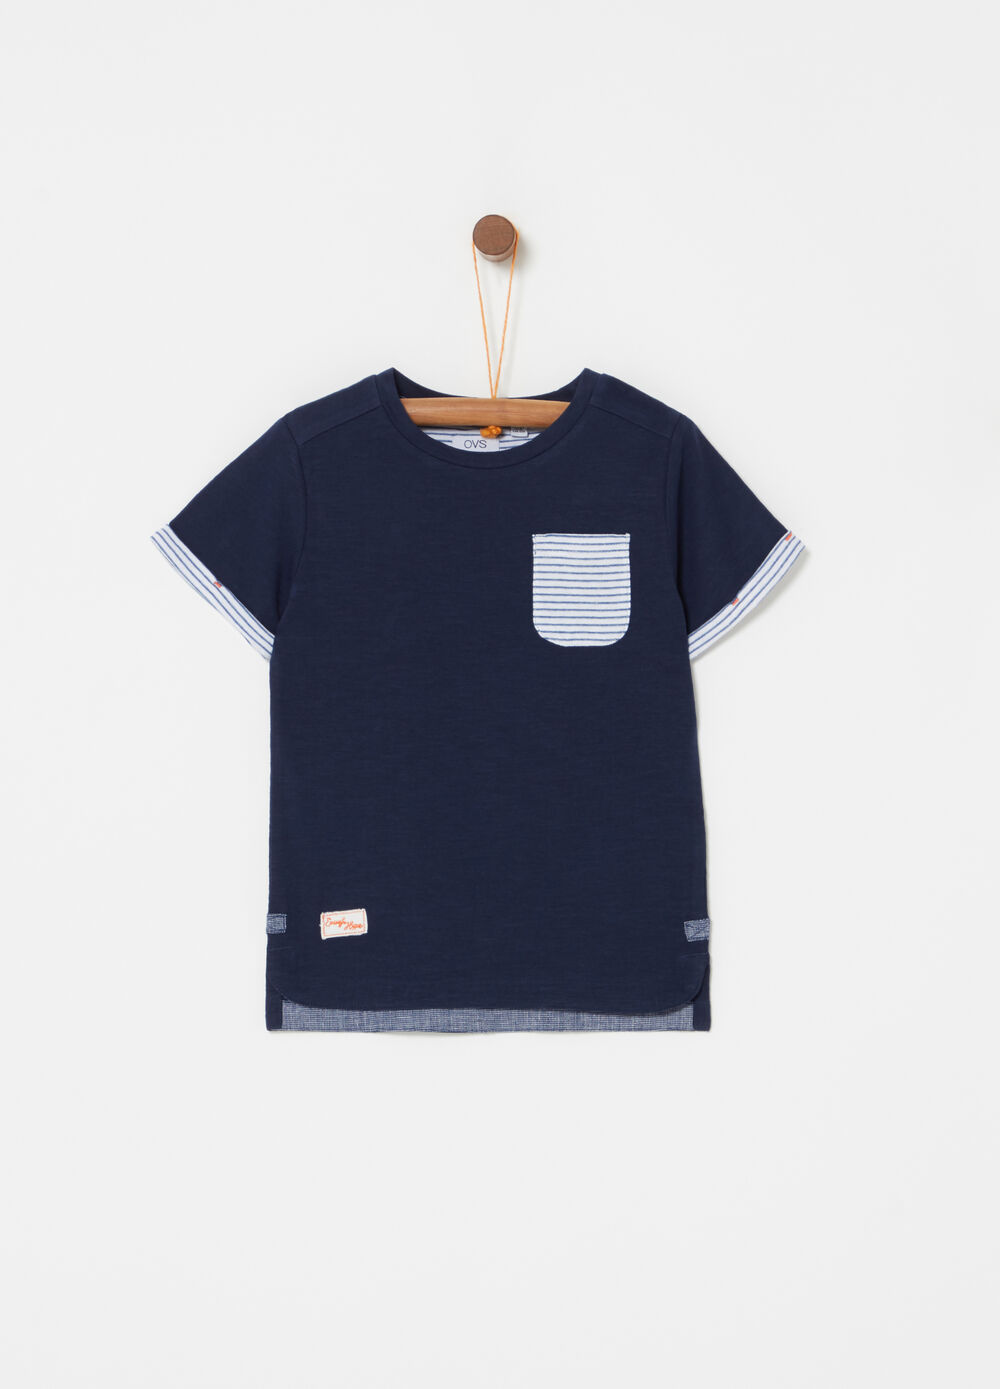 Biocotton T-shirt with pocket and stripes